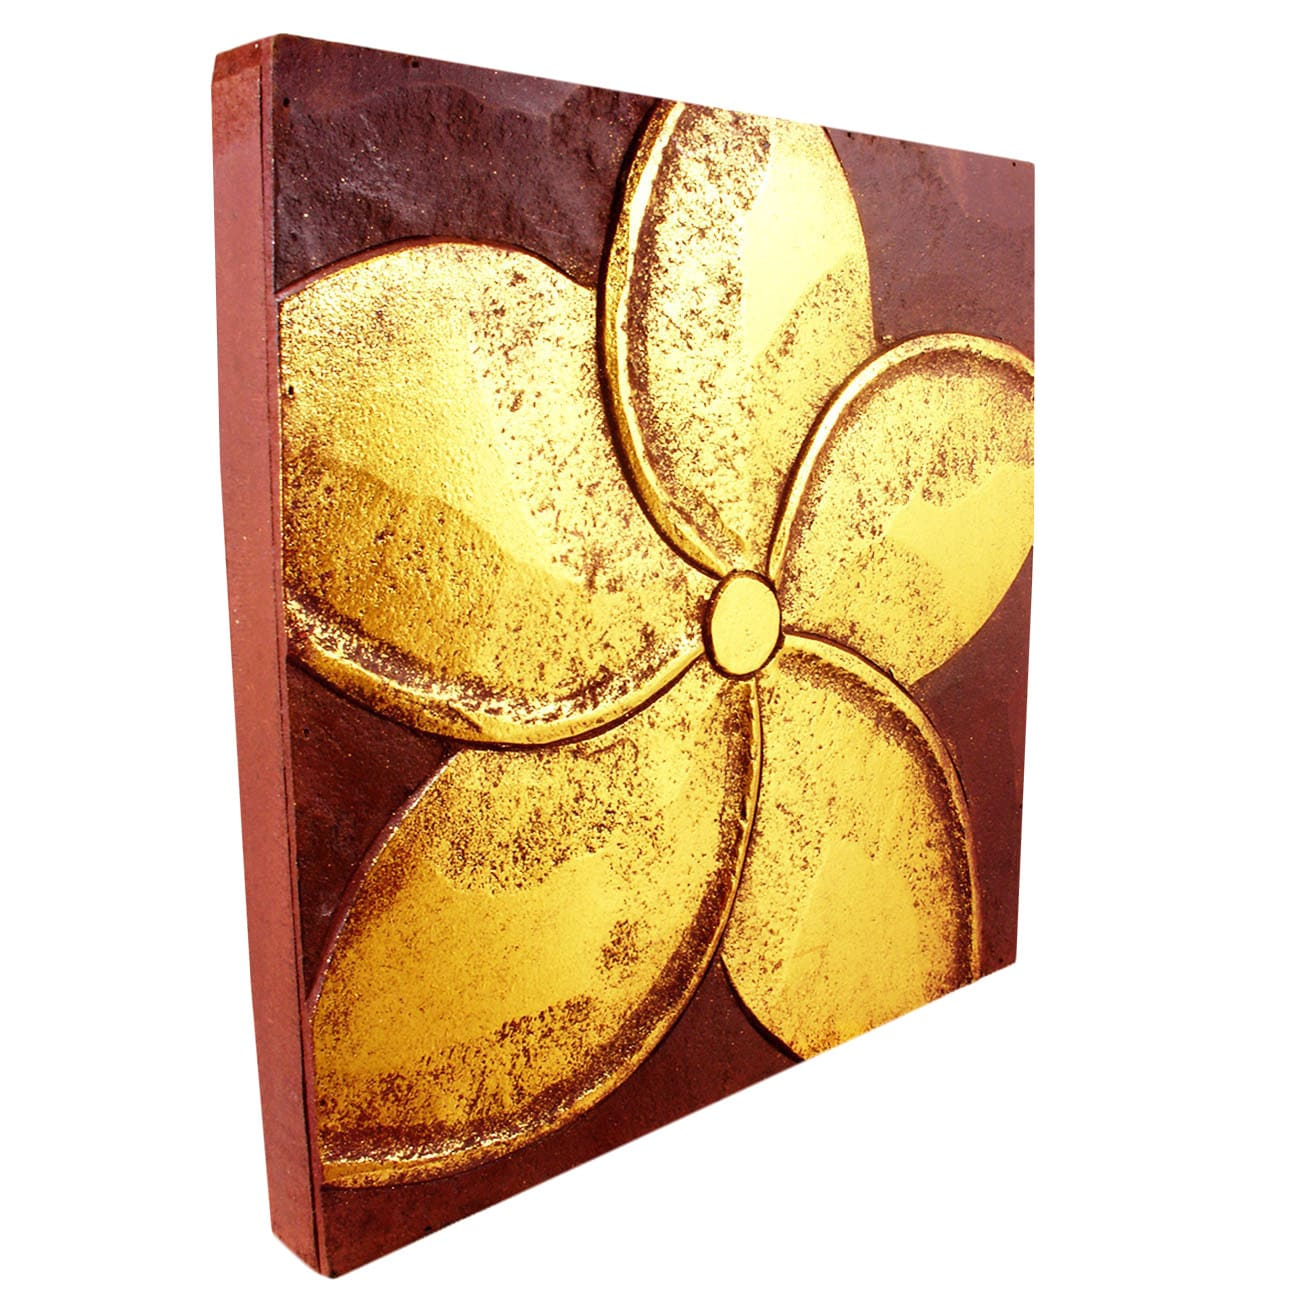 Handmade Jepun Flower Wall Panel (Indonesia) - Free Shipping On ...